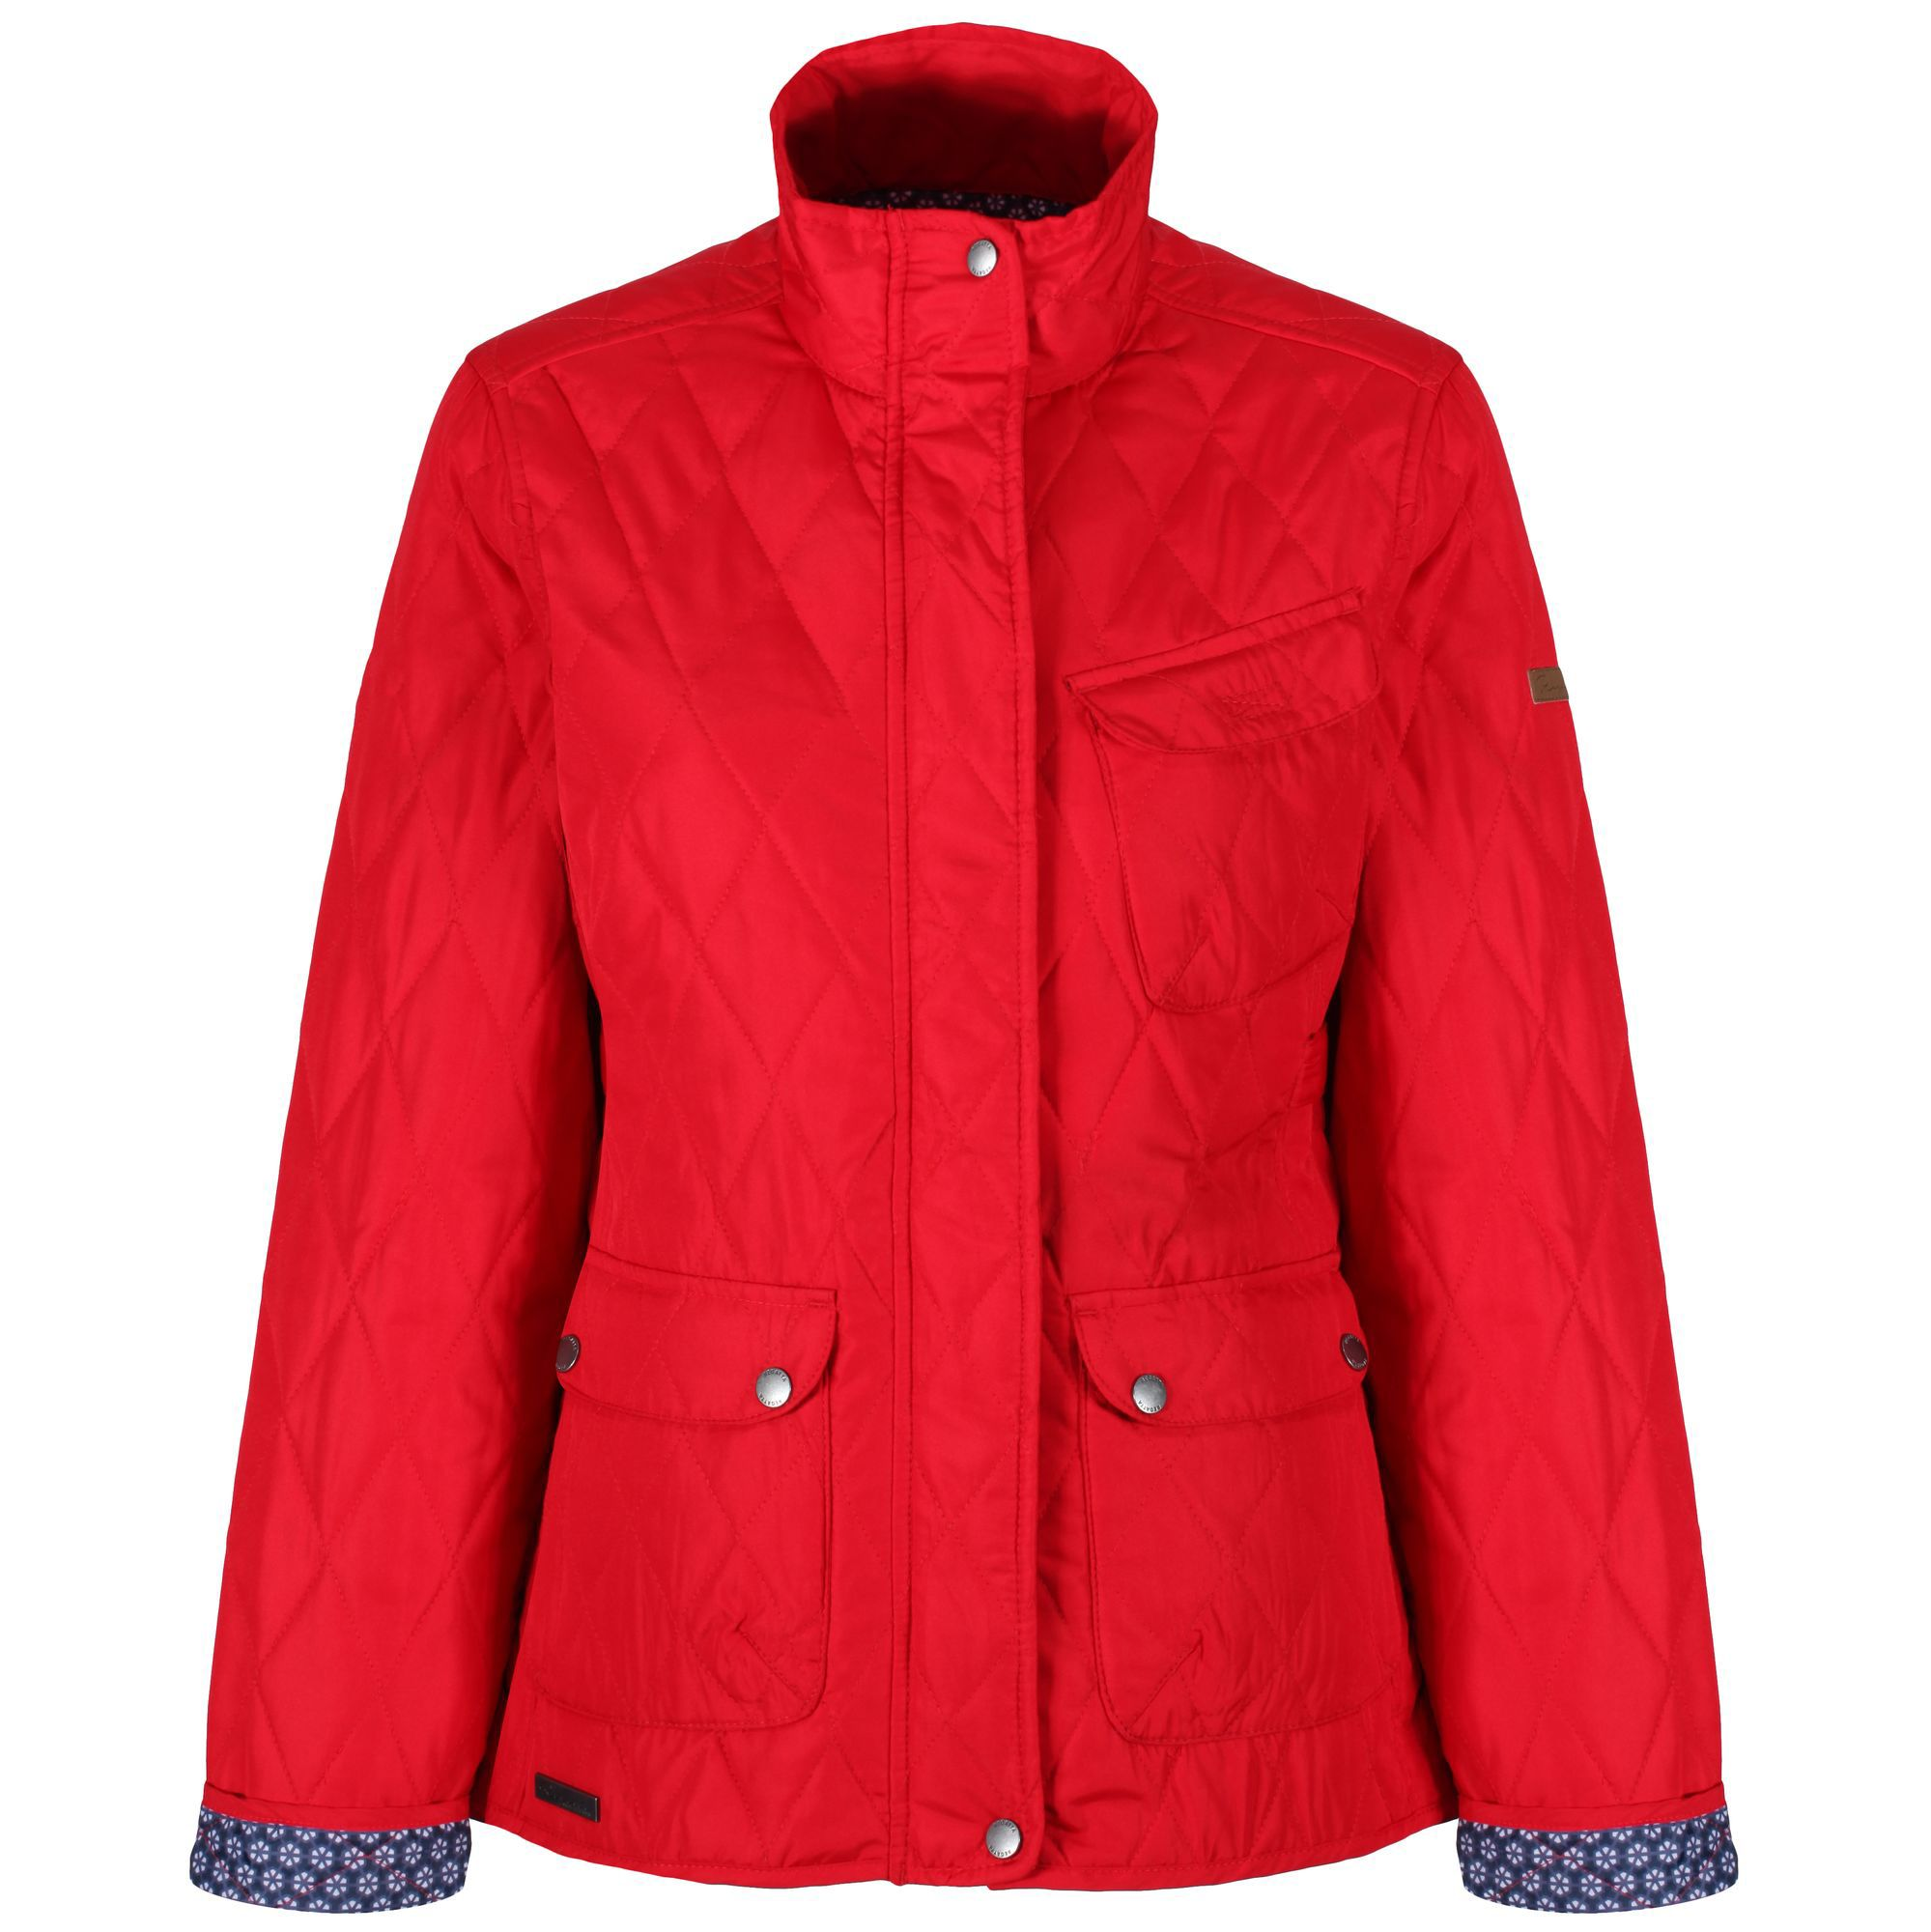 Regatta Camryn Jacket, Red